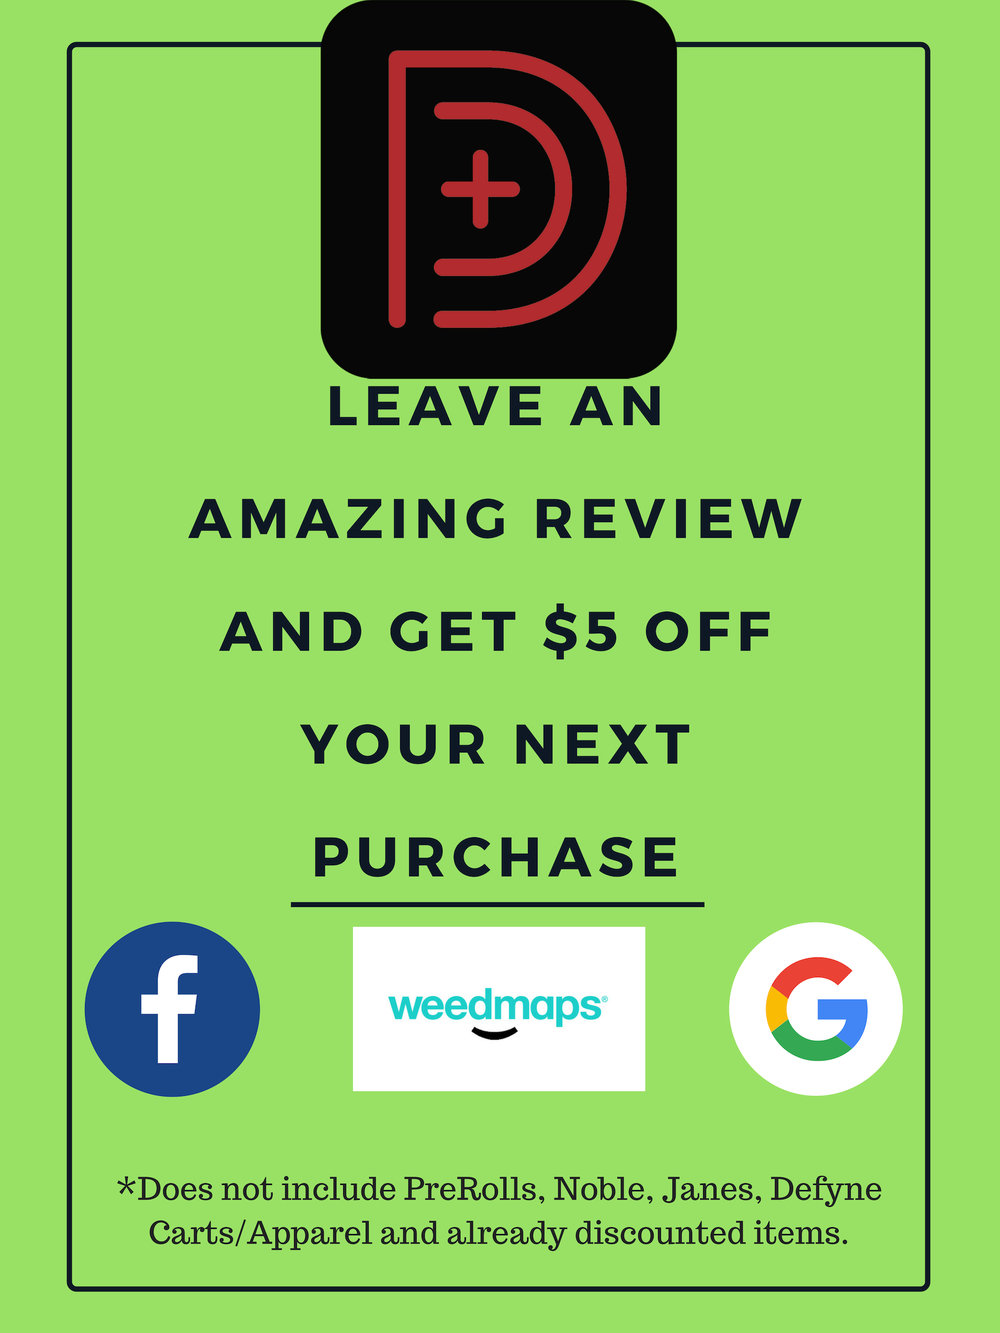 Leave A Good Review and get 5$ off your next Purchase (2).jpg